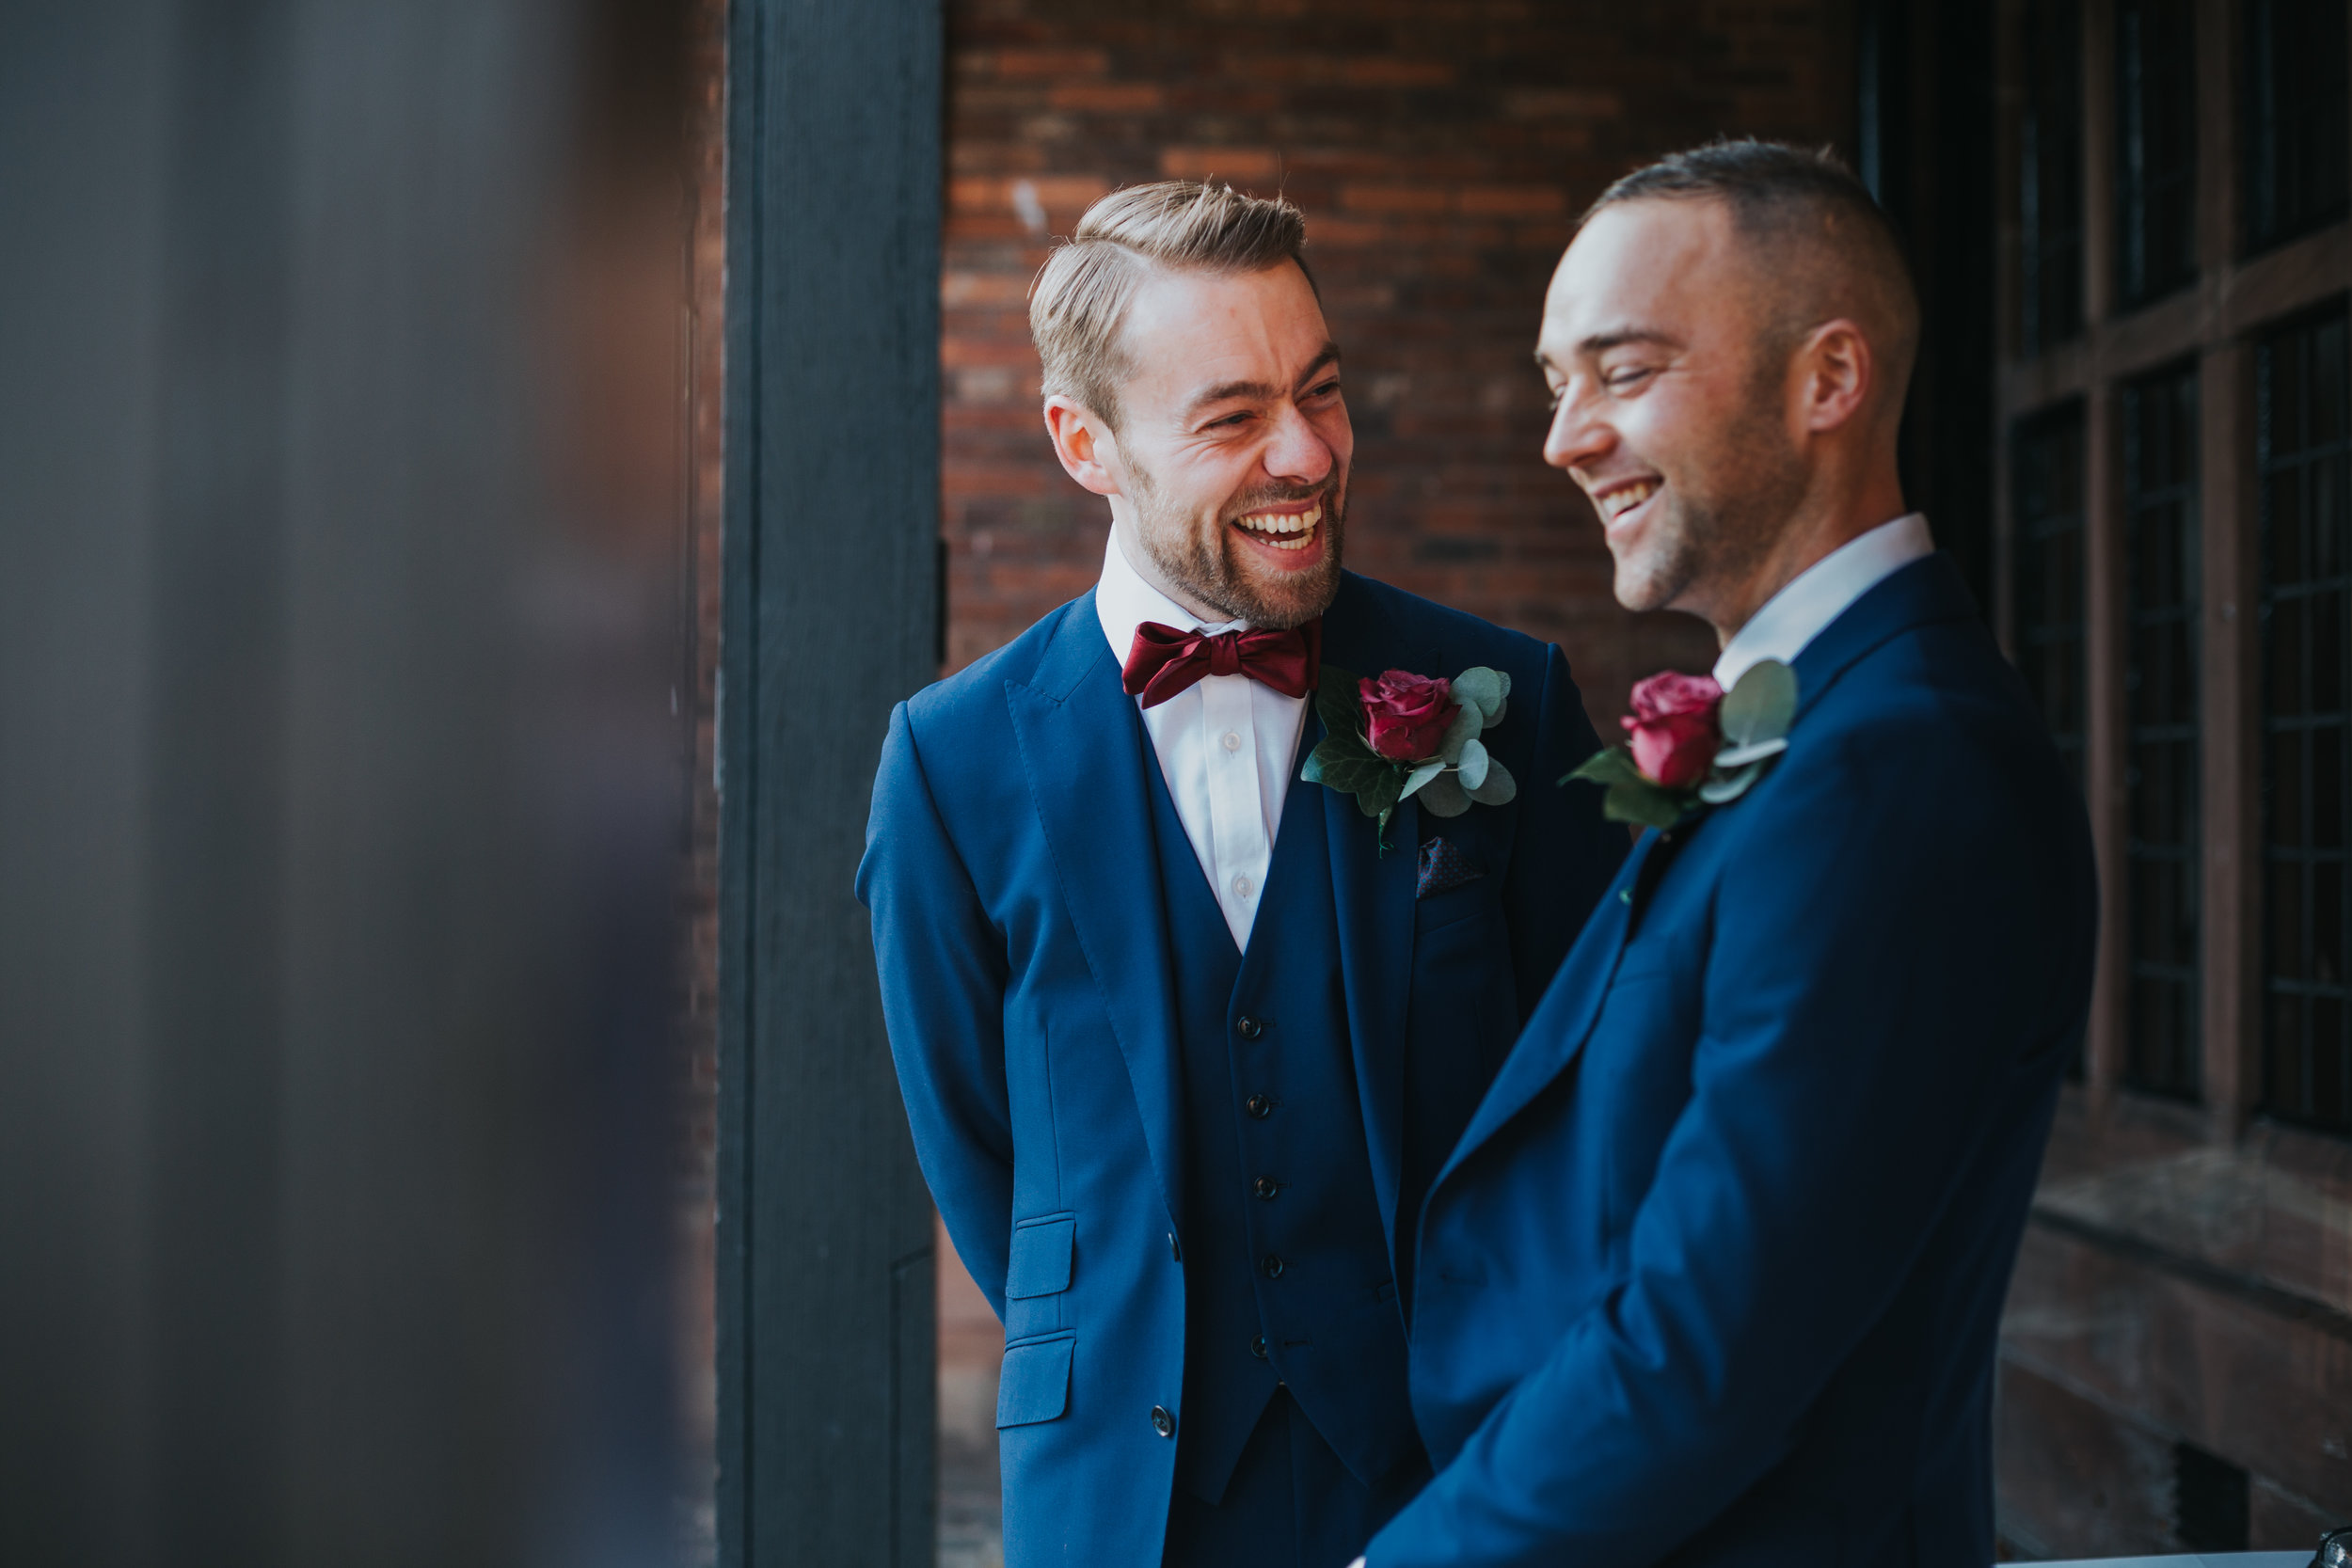 The groom and best man exchange a joke.